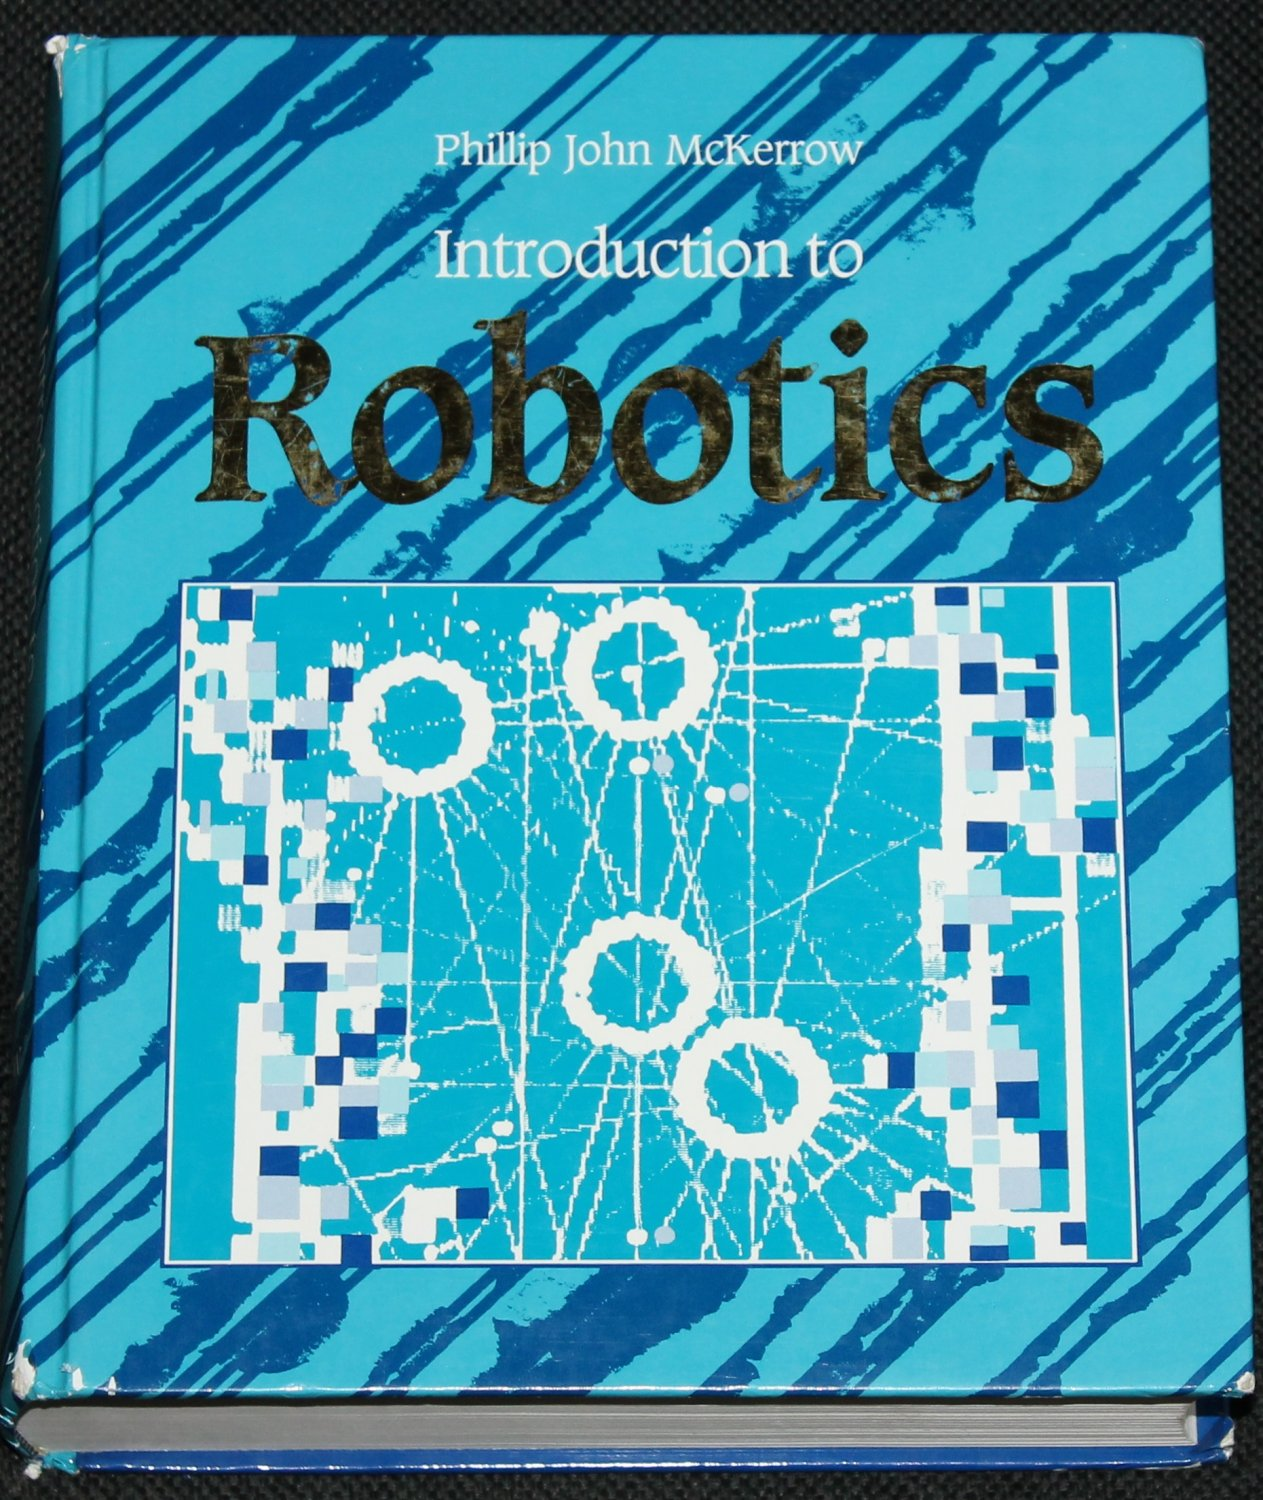 Introduction To Robotics - scientific robot technology book by Phillip John McKerrow